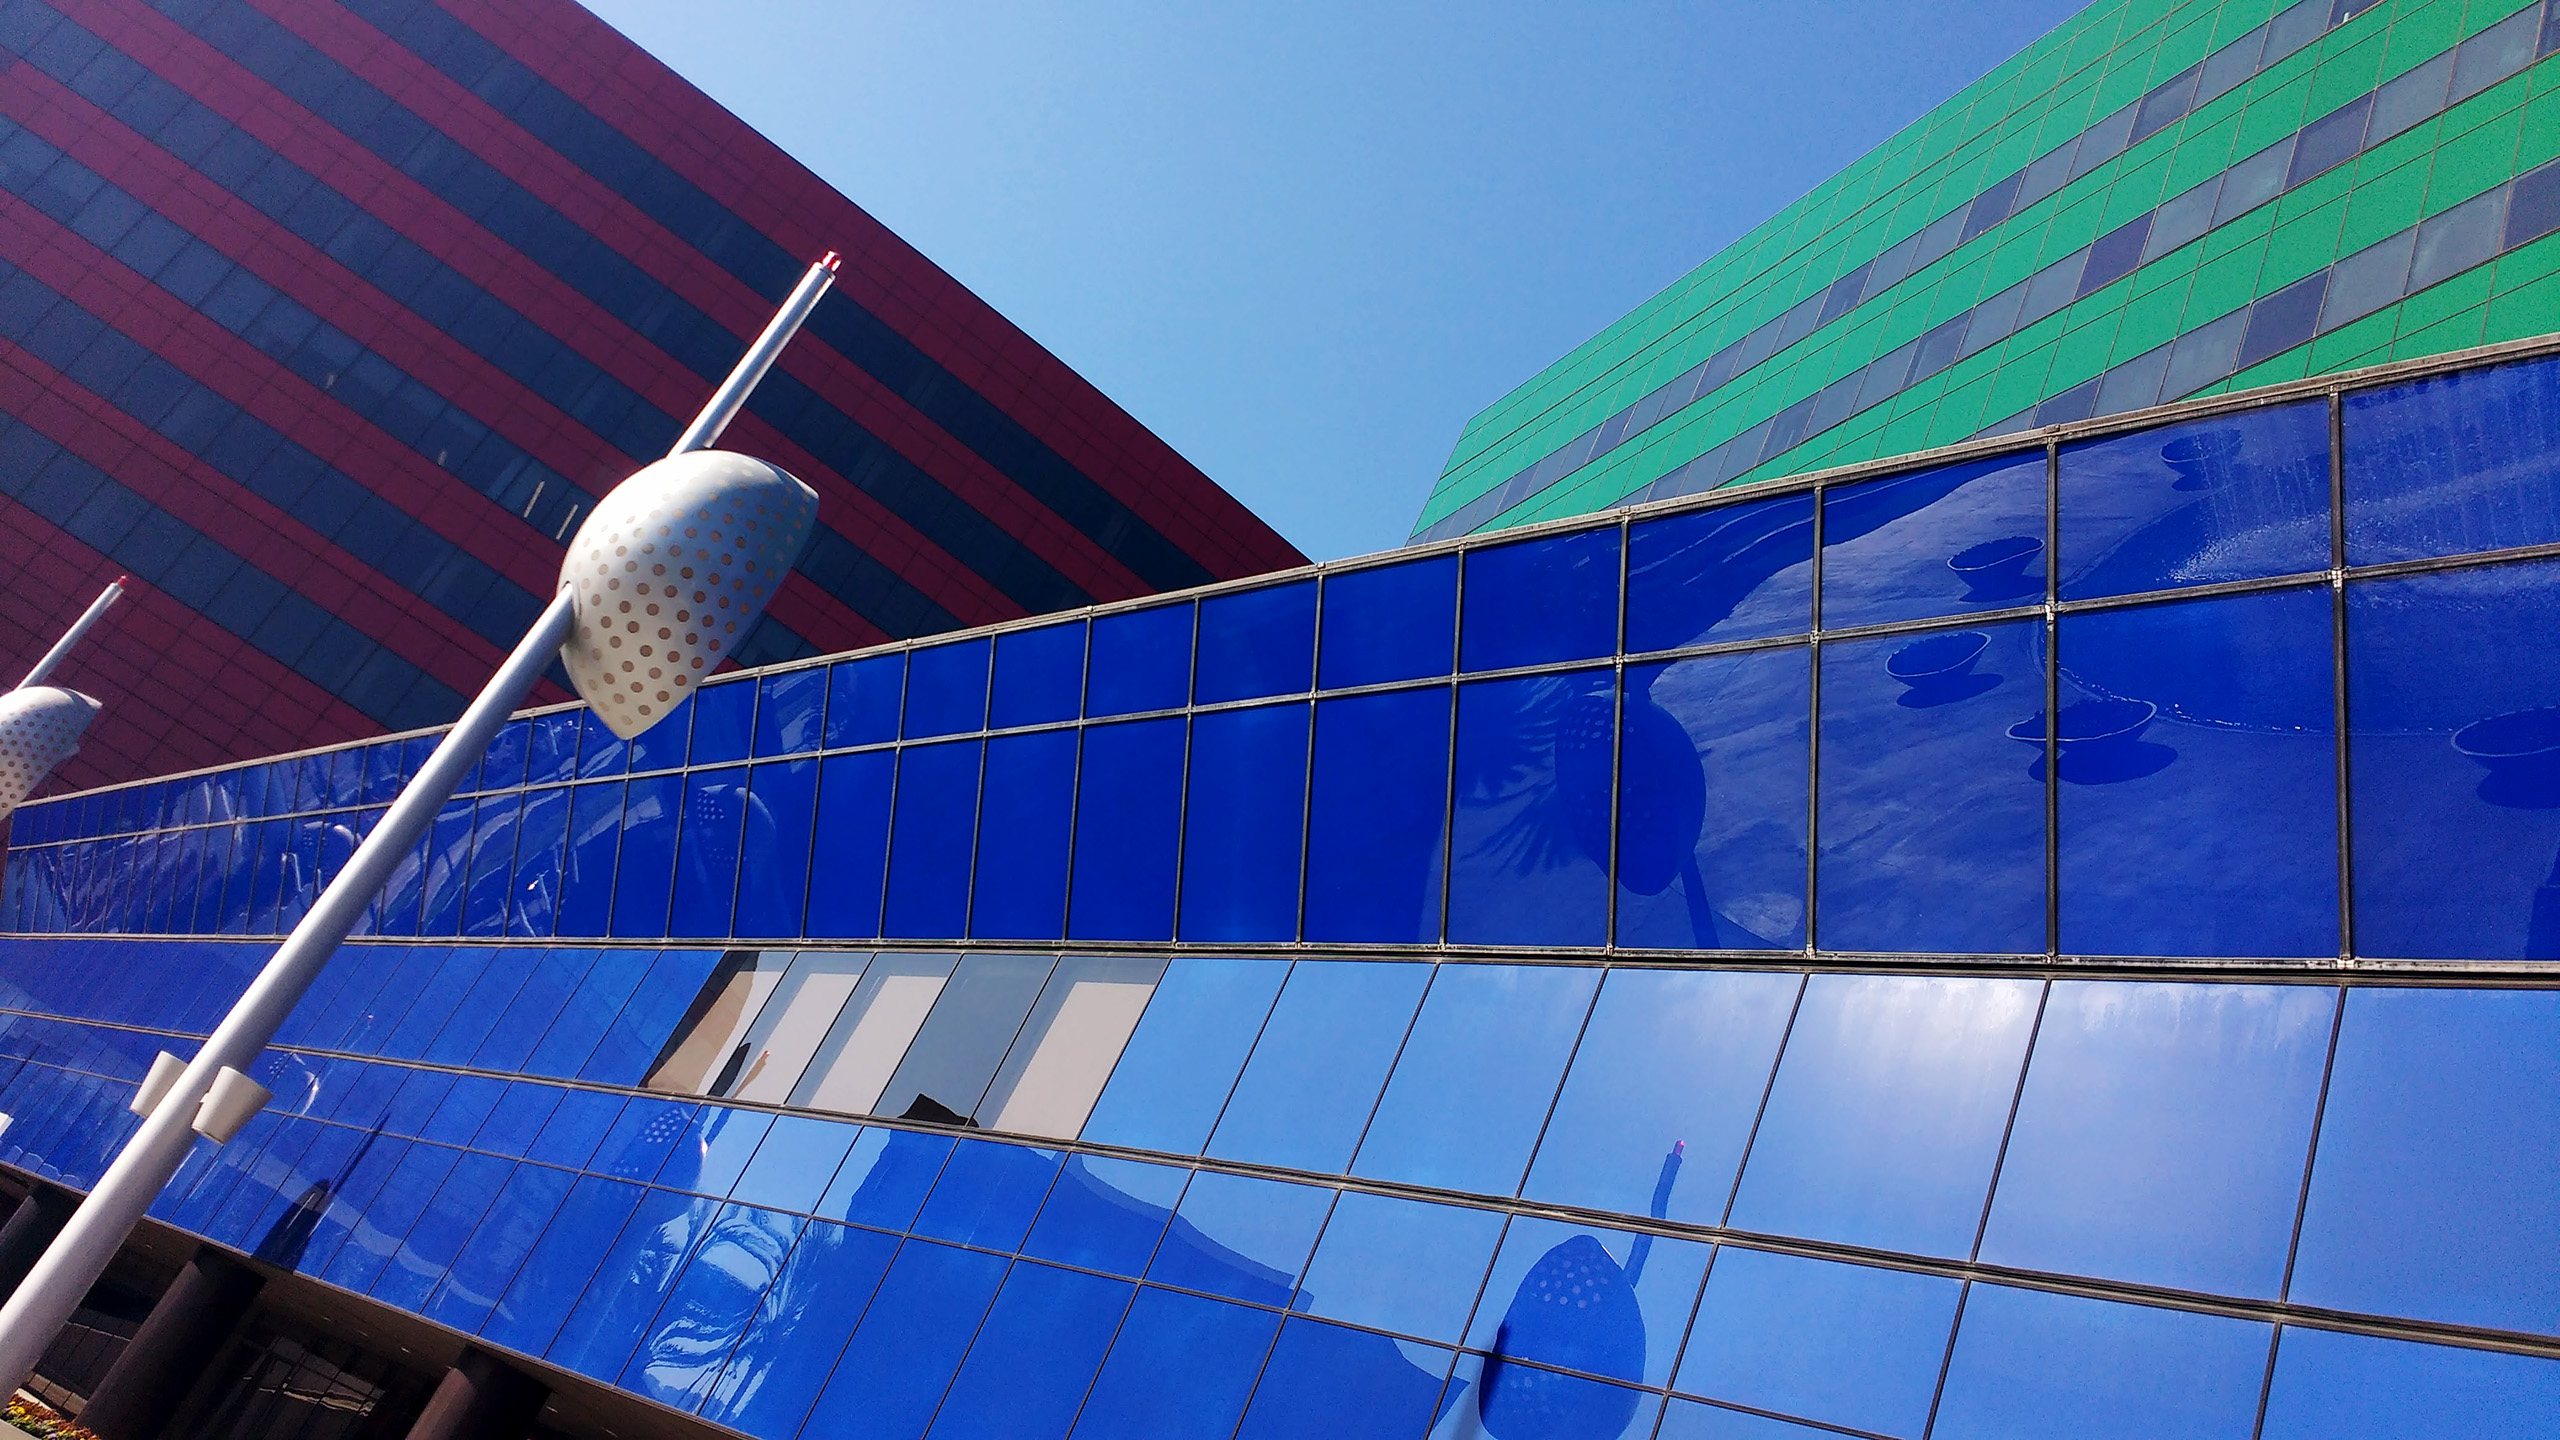 The Blue, Green & Red buildings at the Pacific Design Center in West Los Angeles